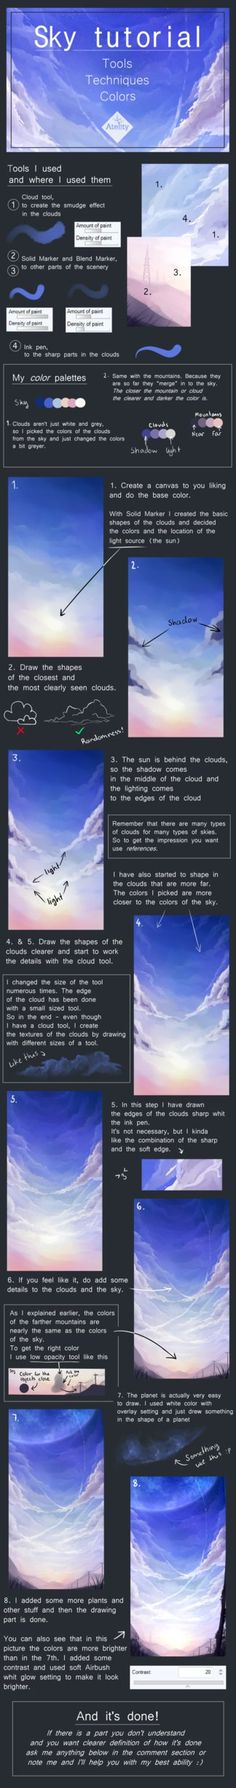 Cloudy sky tutorial by Atelity.deviantart.com on @DeviantArt